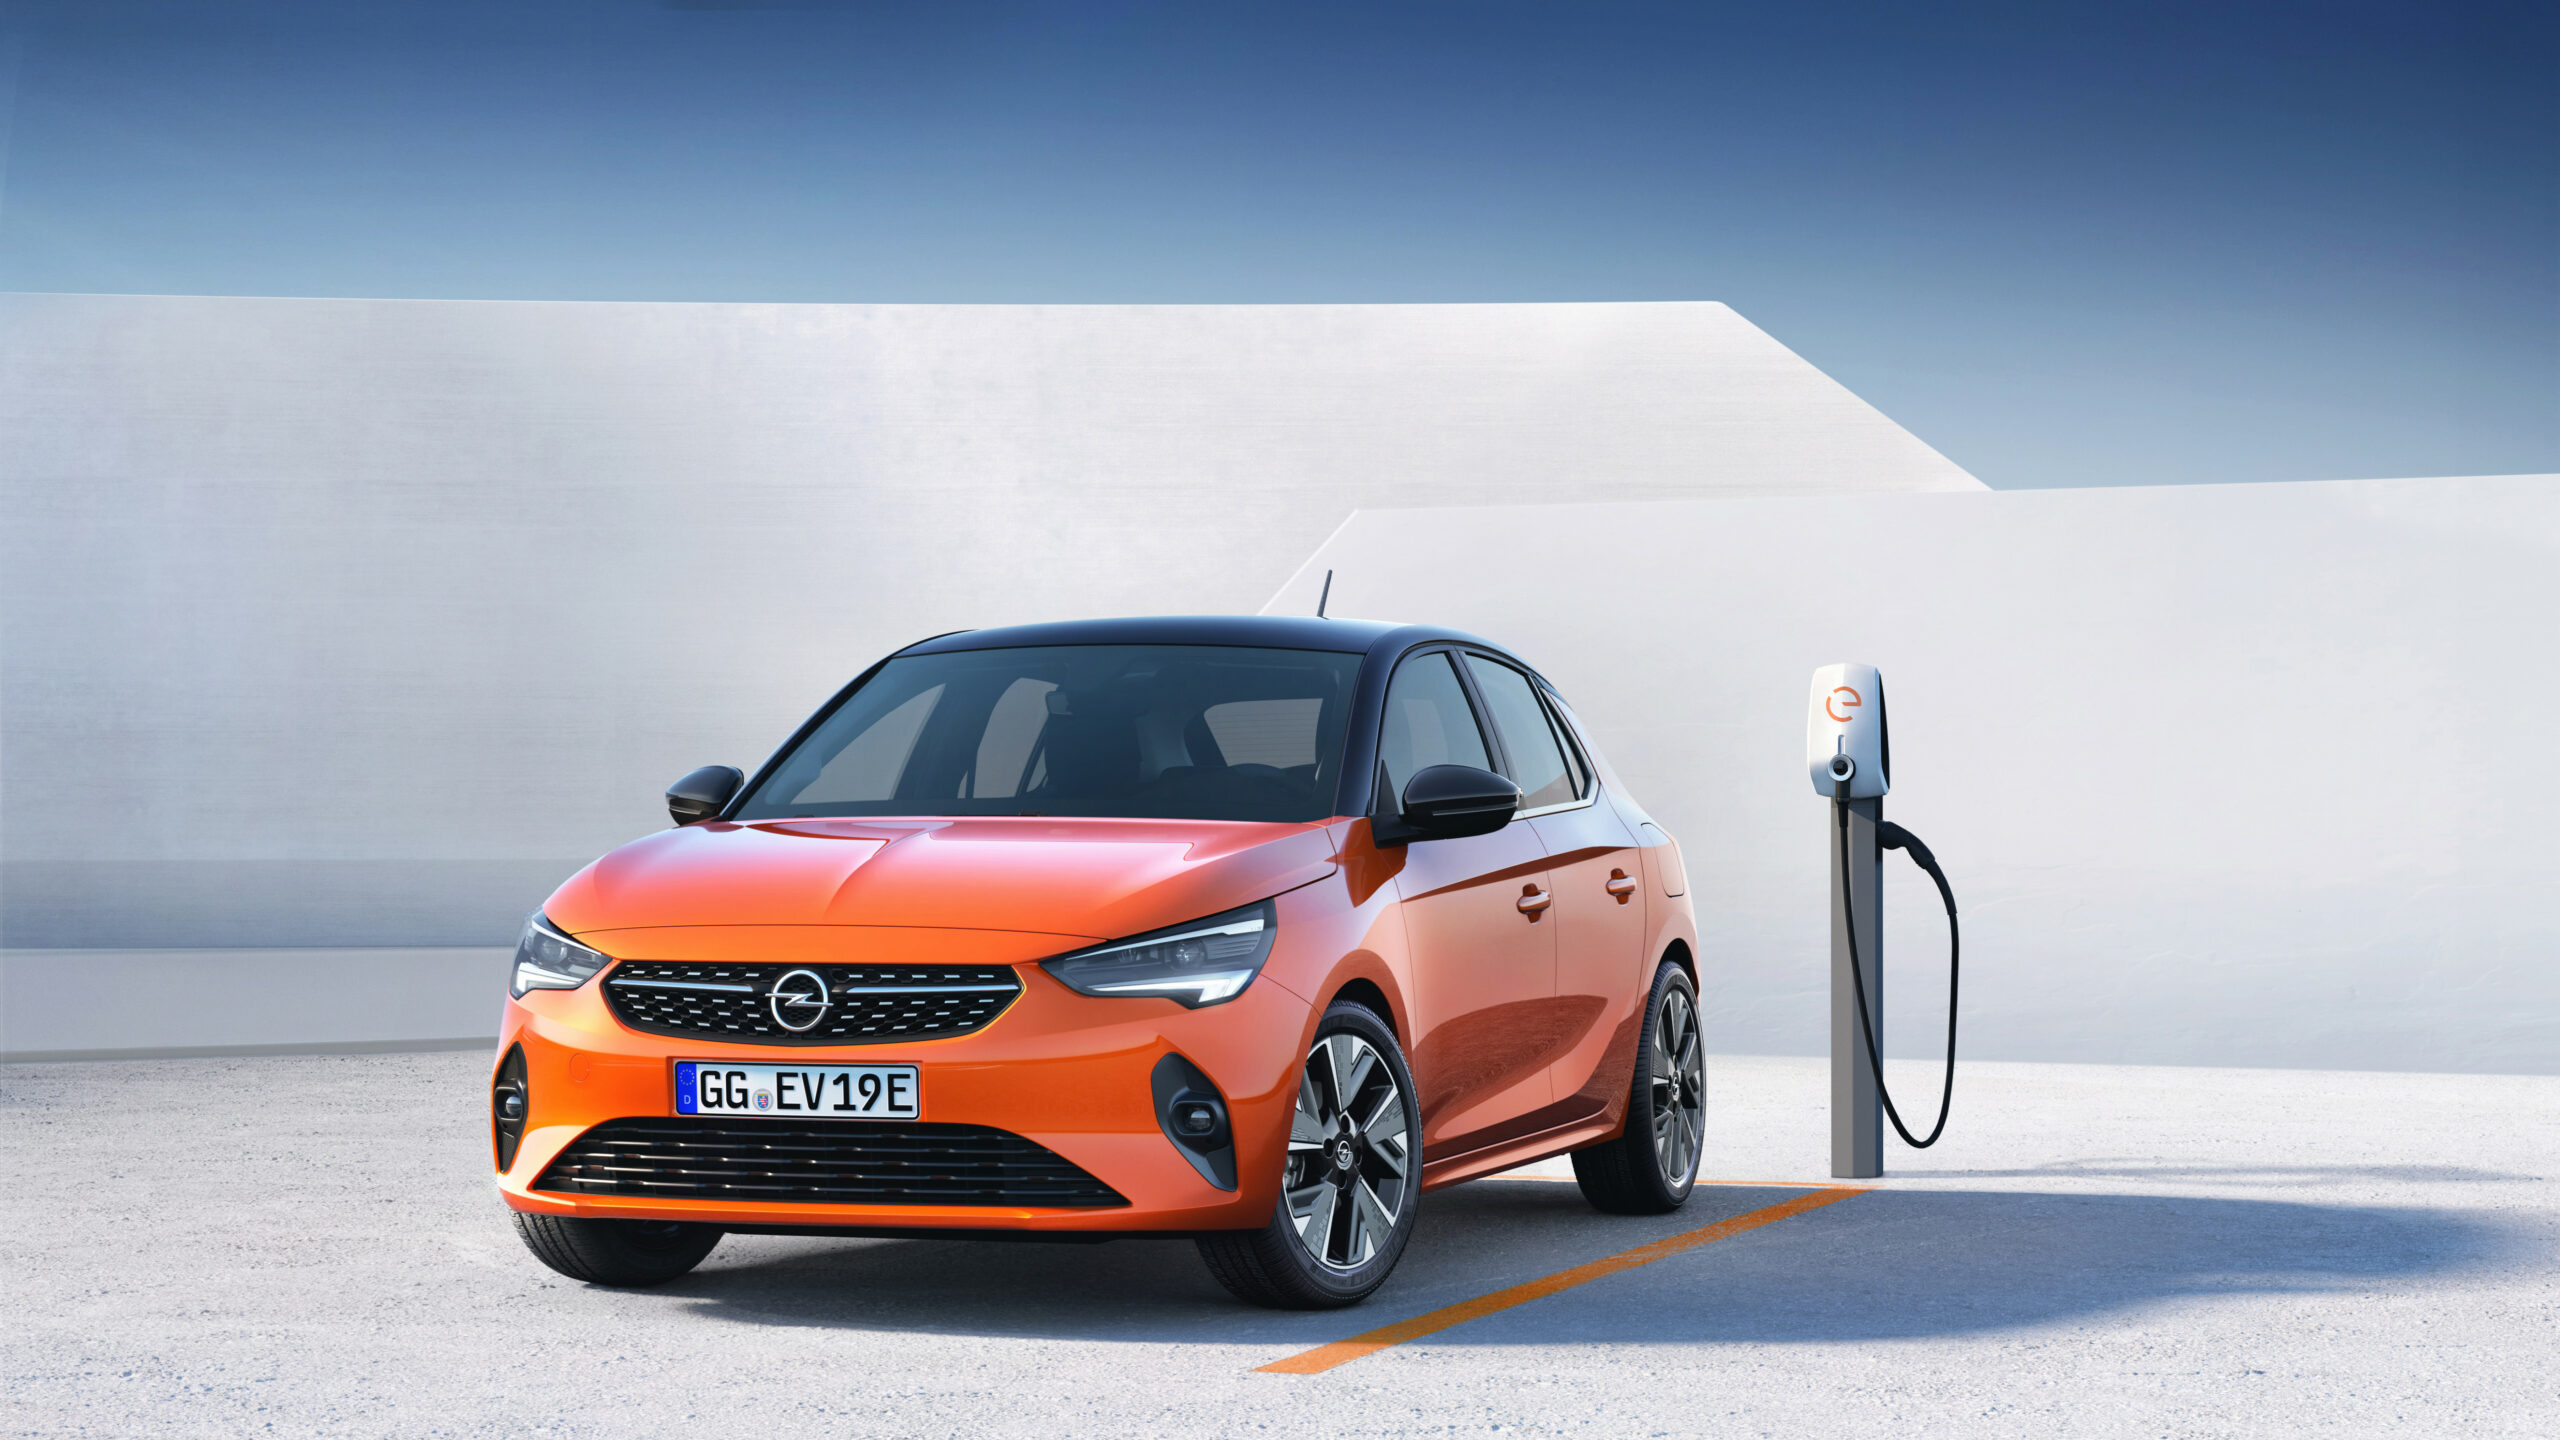 Sixth-Generation Opel Corsa Goes Electric - Auto Futures - opel big event 2020